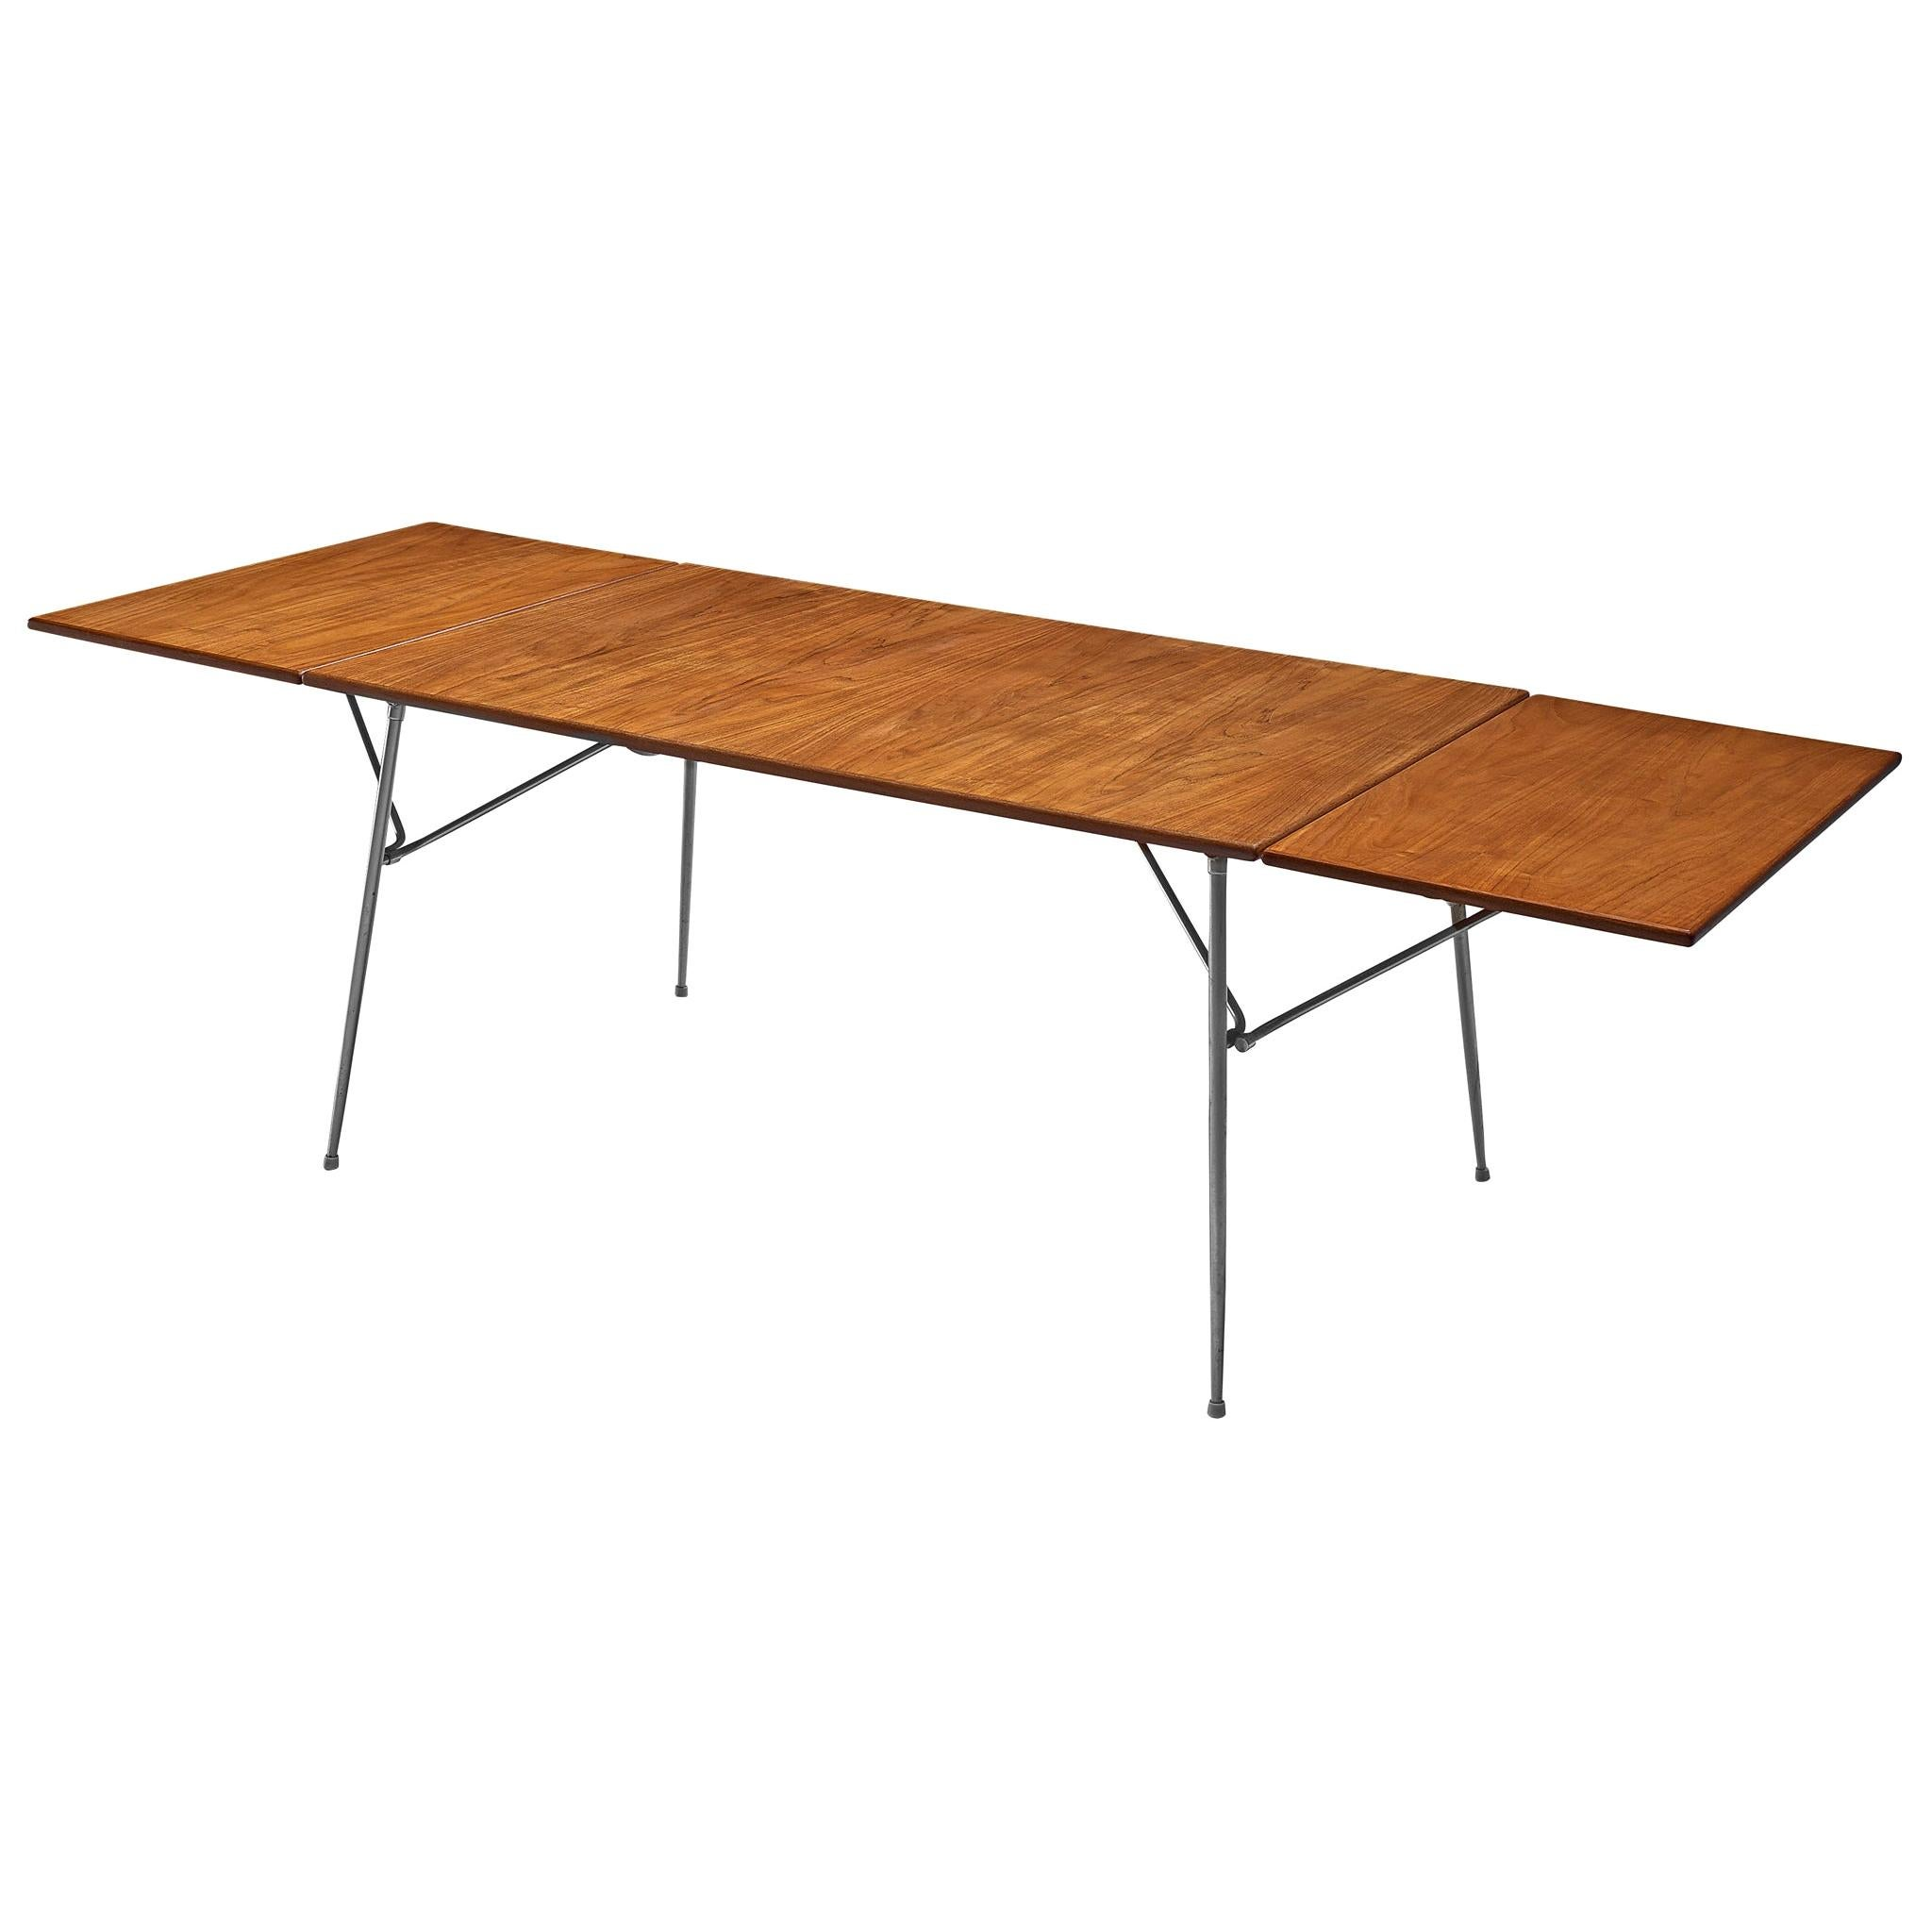 Børge Mogensen Drop-Leaf Dining Table in Teak and Steel